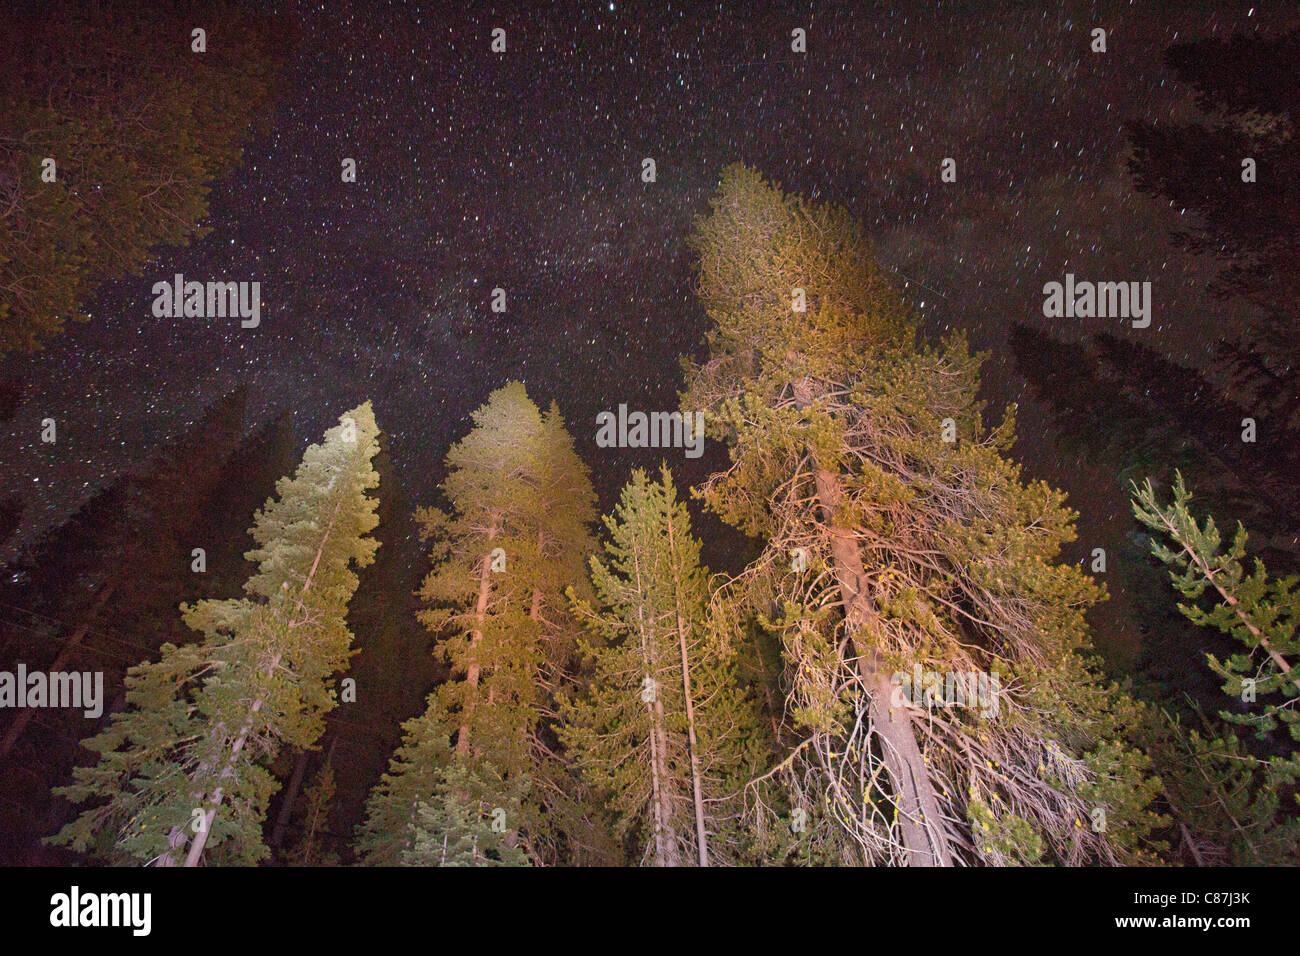 Mixed conifer forest at 6500 ft in the Sierra Nevada, mainly Lodgepole Pines, California by night showing stars. - Stock Image